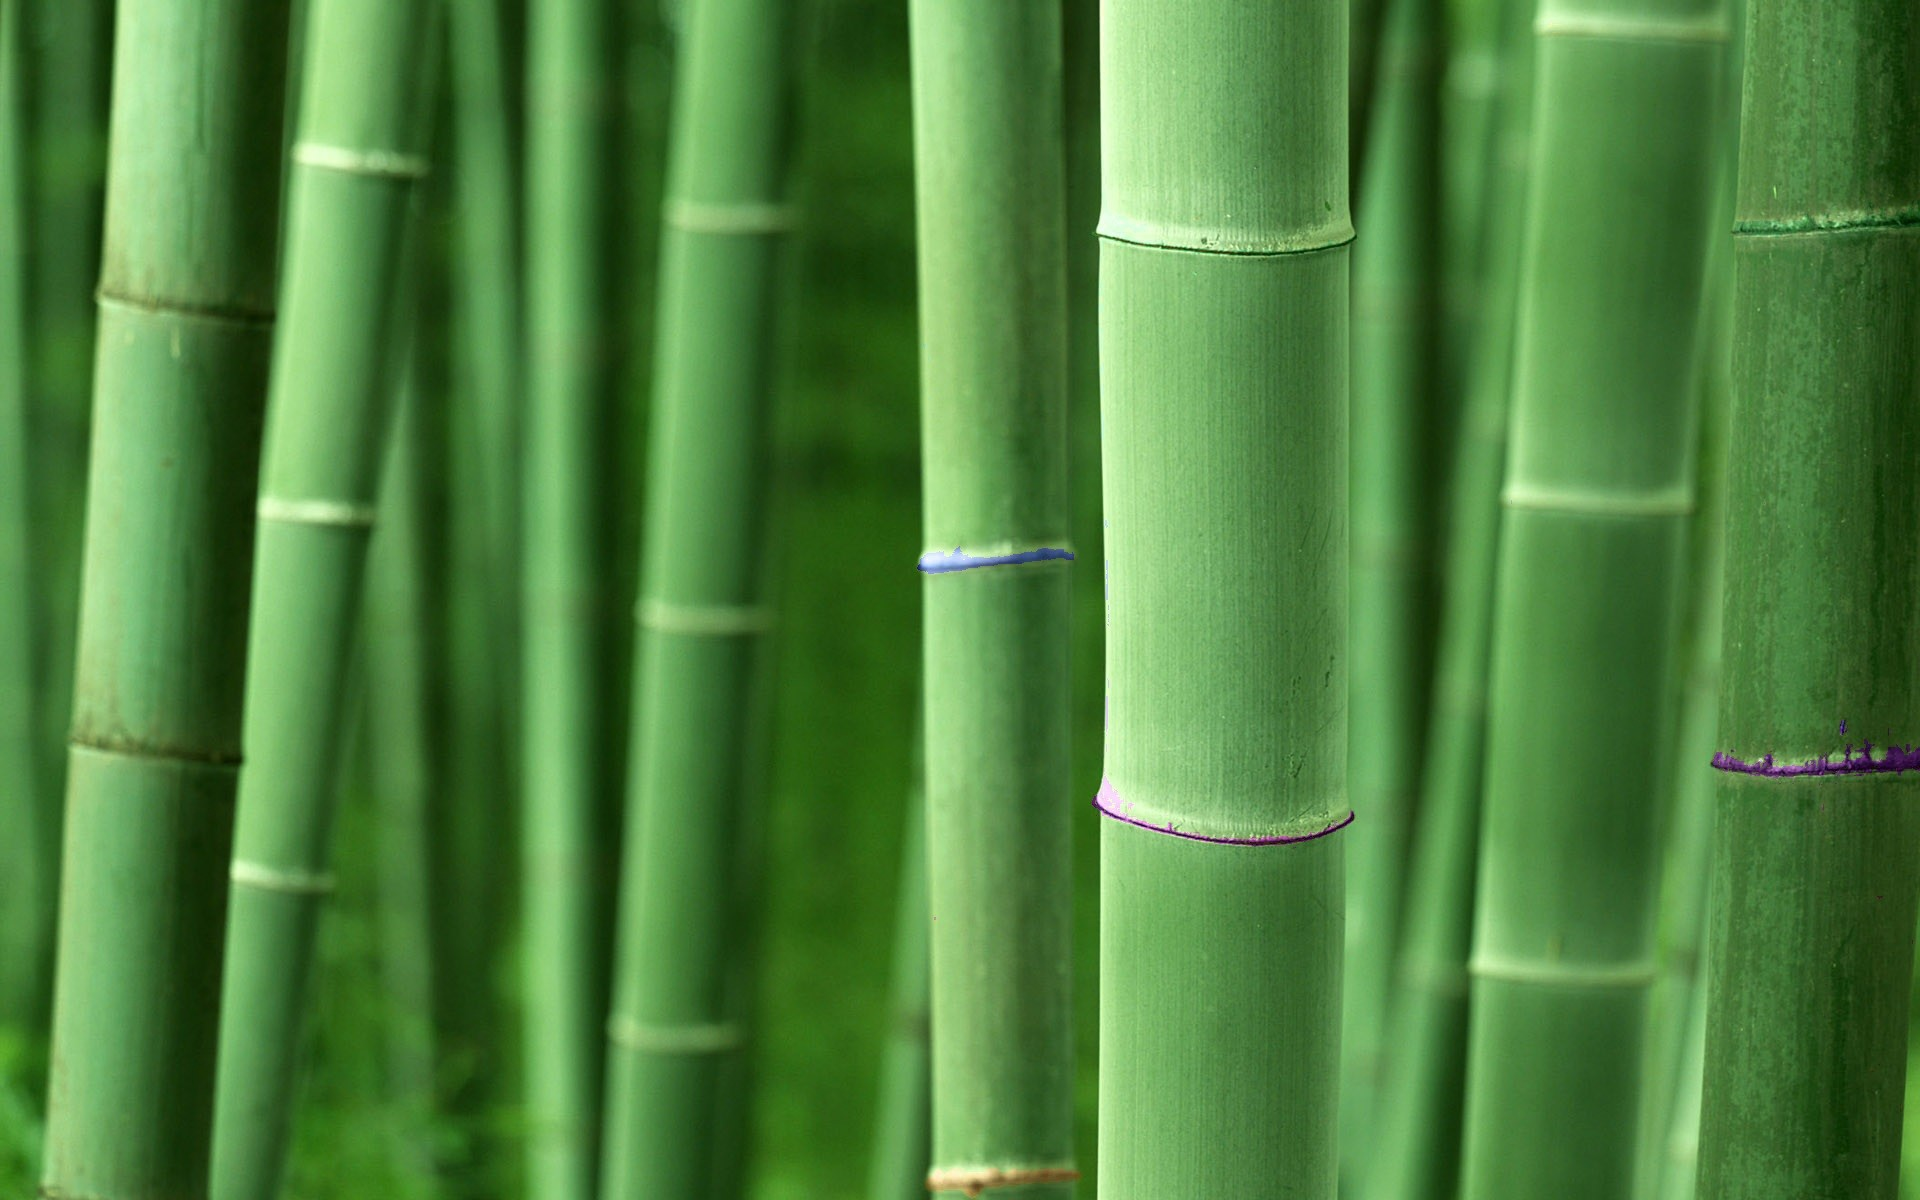 1920x1200 Free bamboo wallpaper background